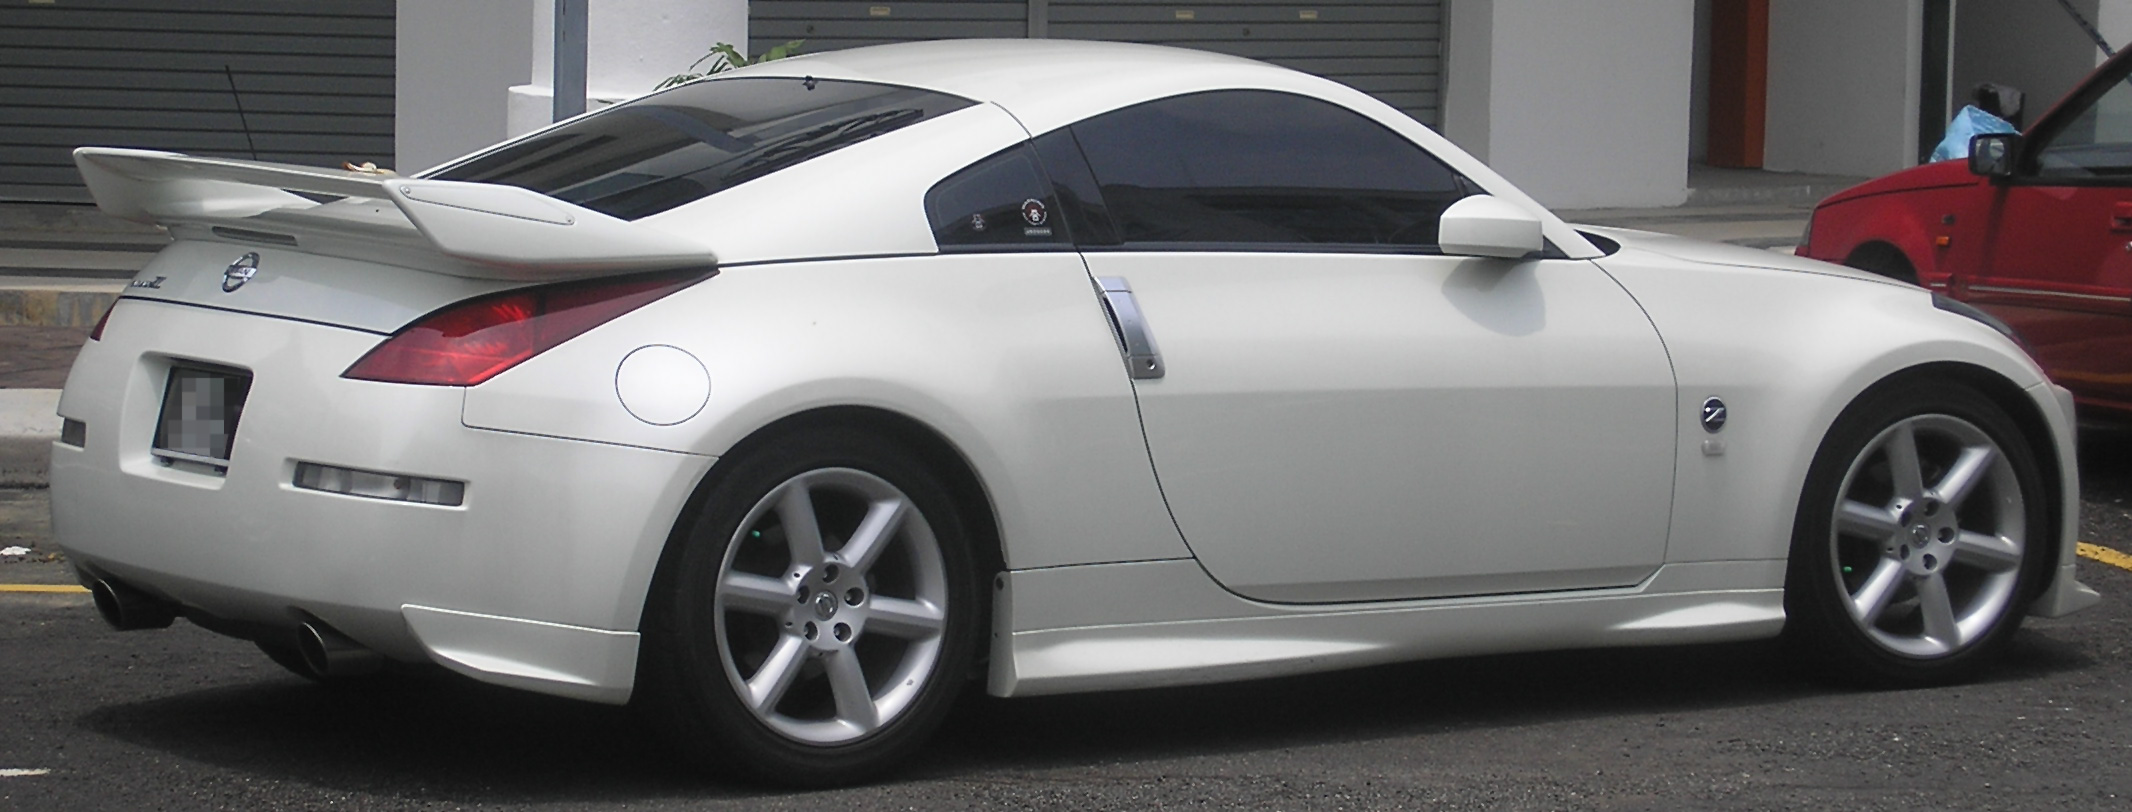 File:Nissan 350Z (first generation) (rear), Serdang.jpg ...